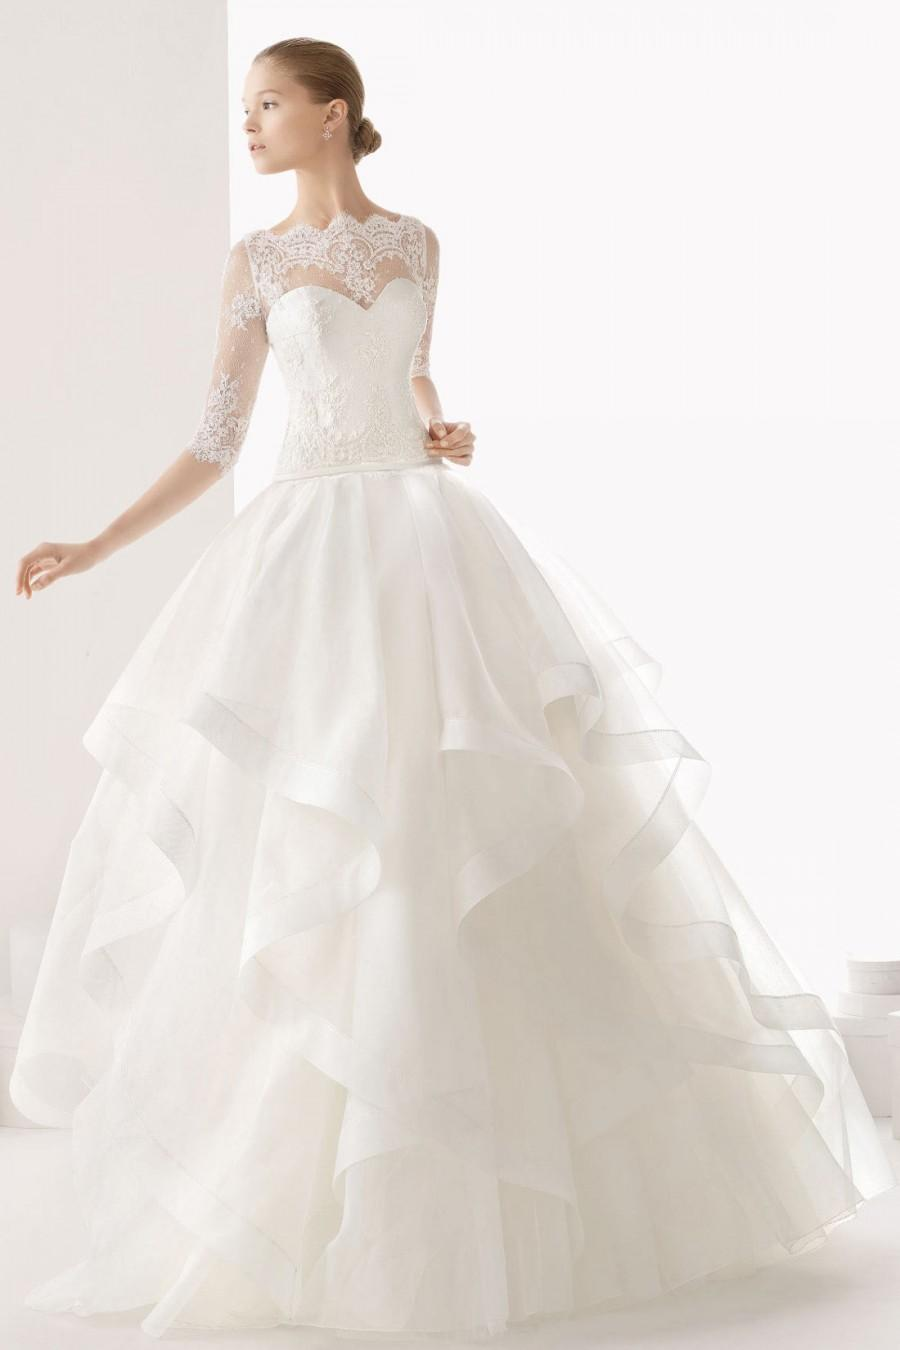 Wedding Dress with Sleeves and Ruffles